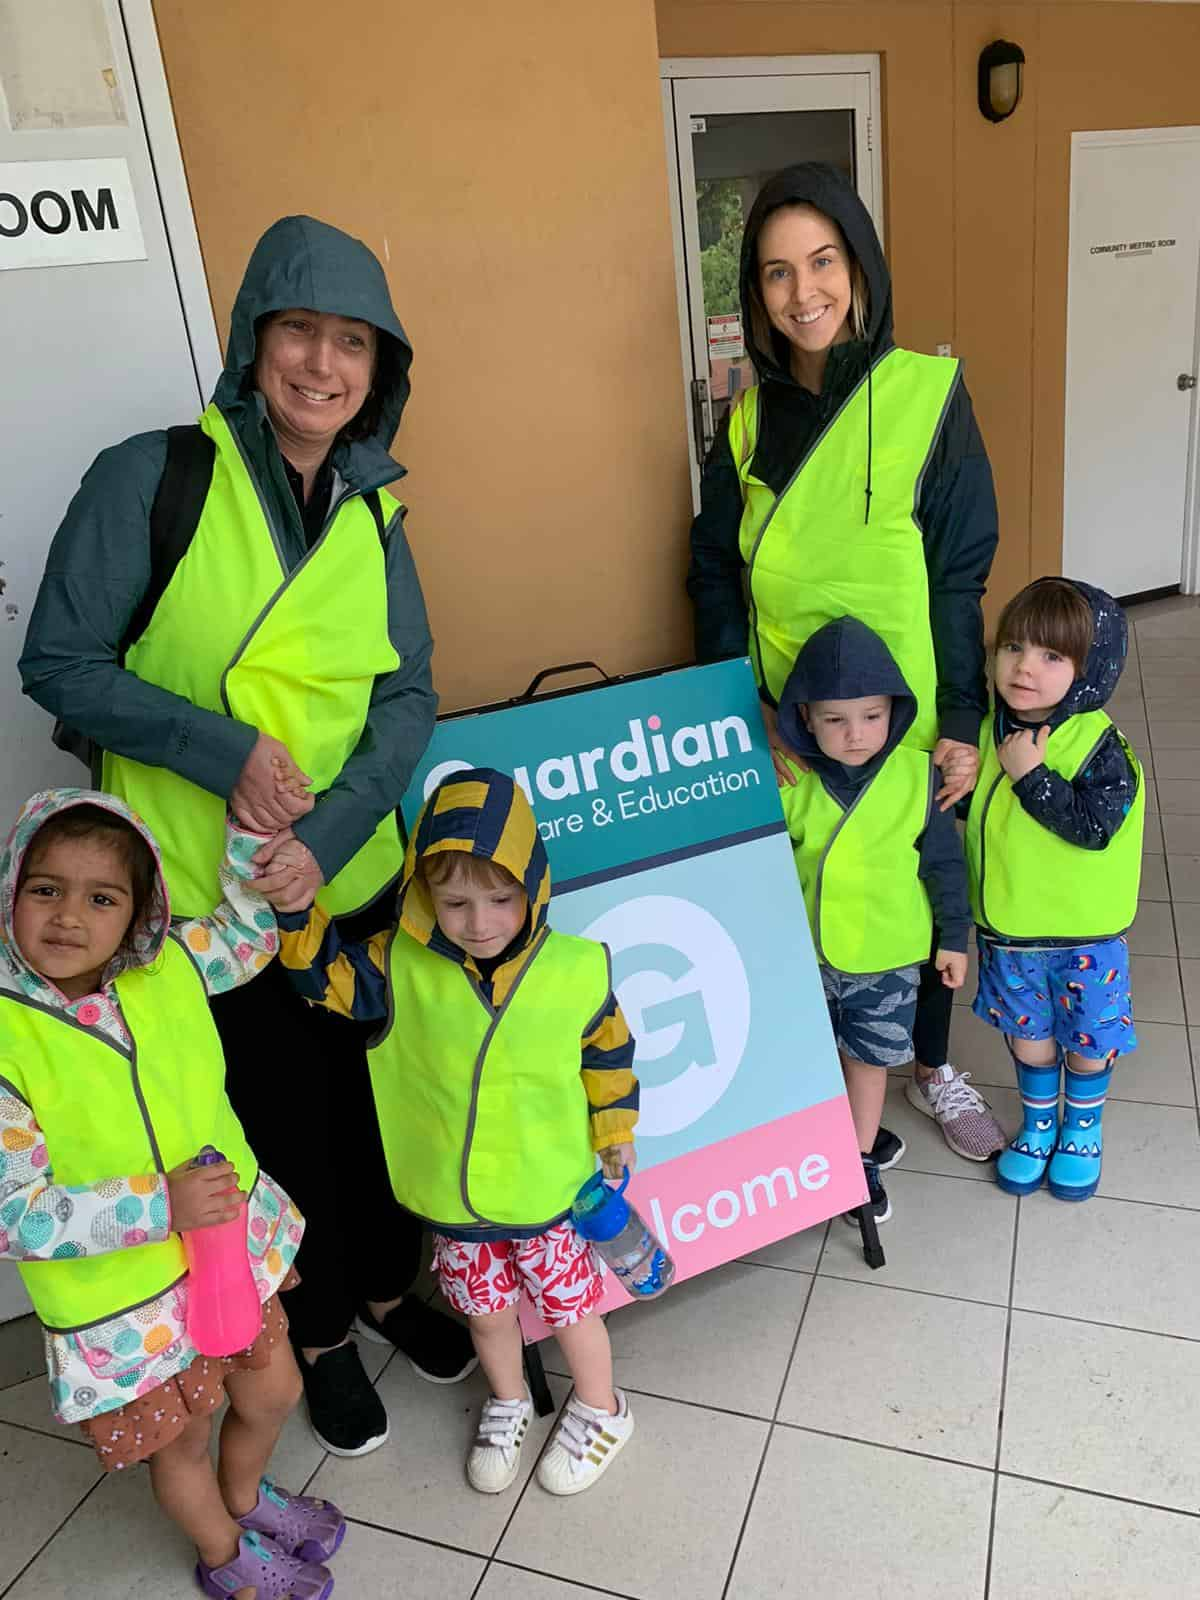 Children and Educators in Guardian safety vests, on way to first swimming lesson